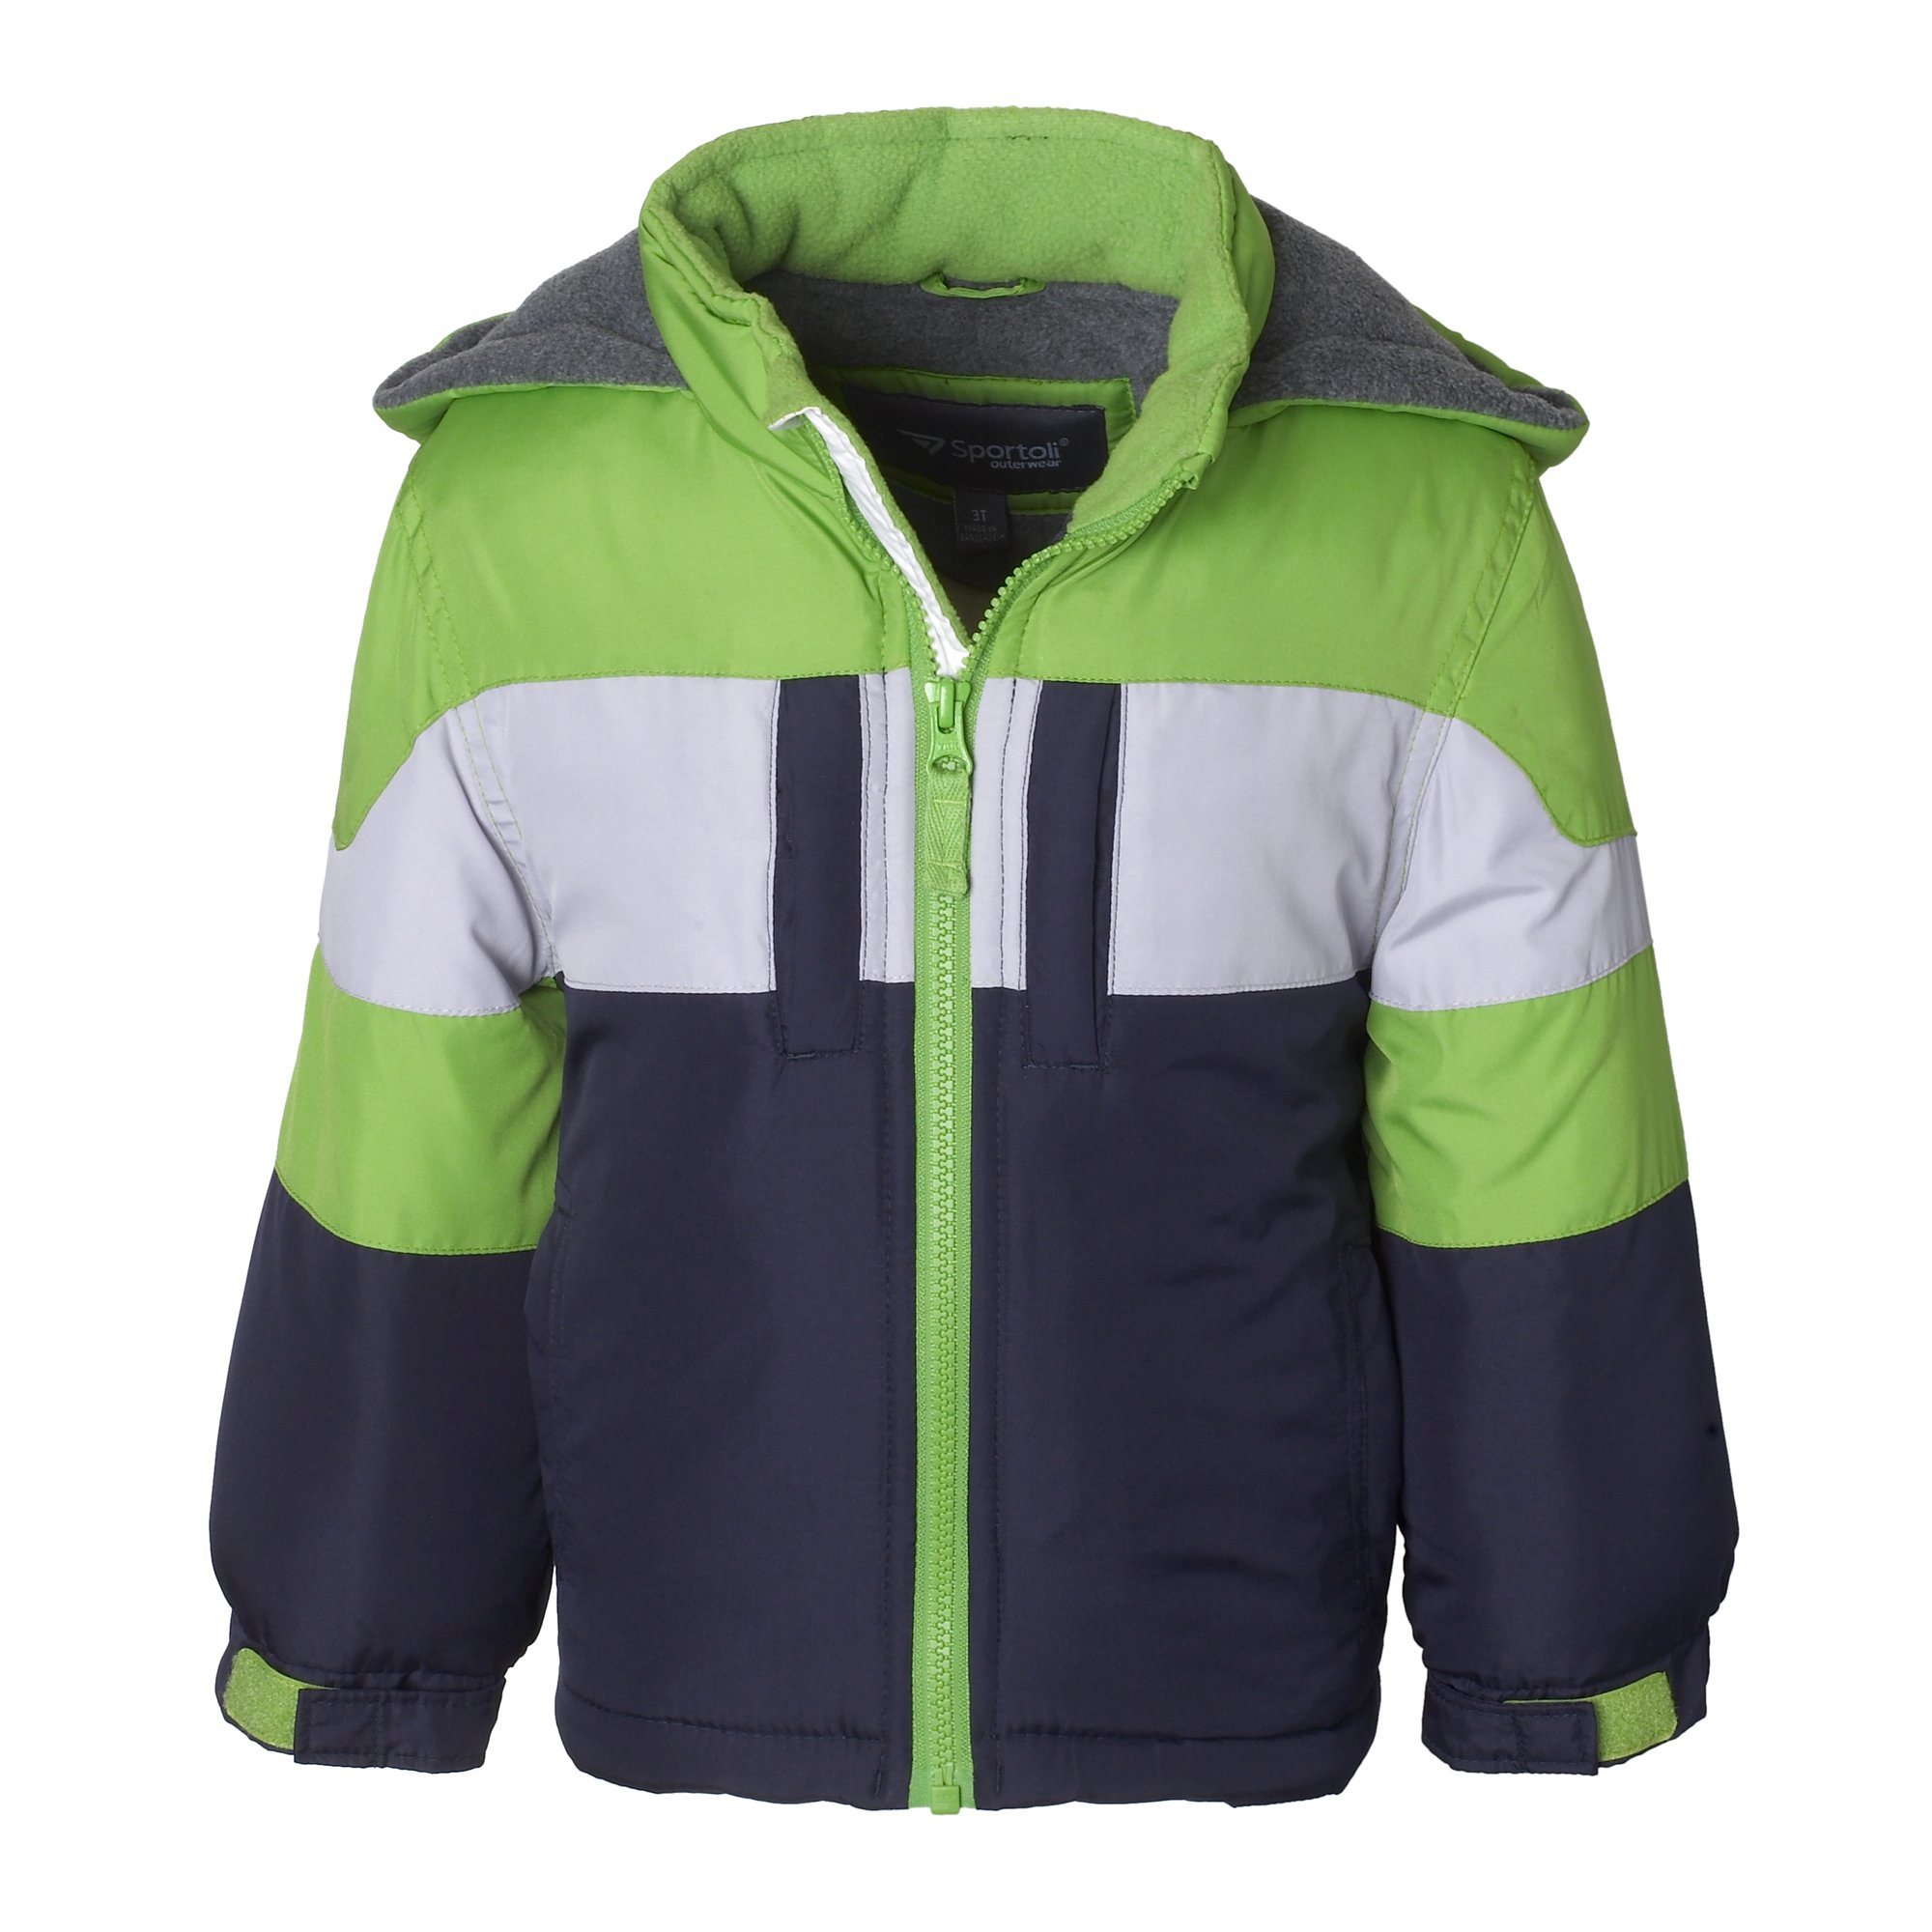 5f60d6636c9c Buy Sportoli Boys  Fleece Lined Hooded Colorblock Winter Puffer ...